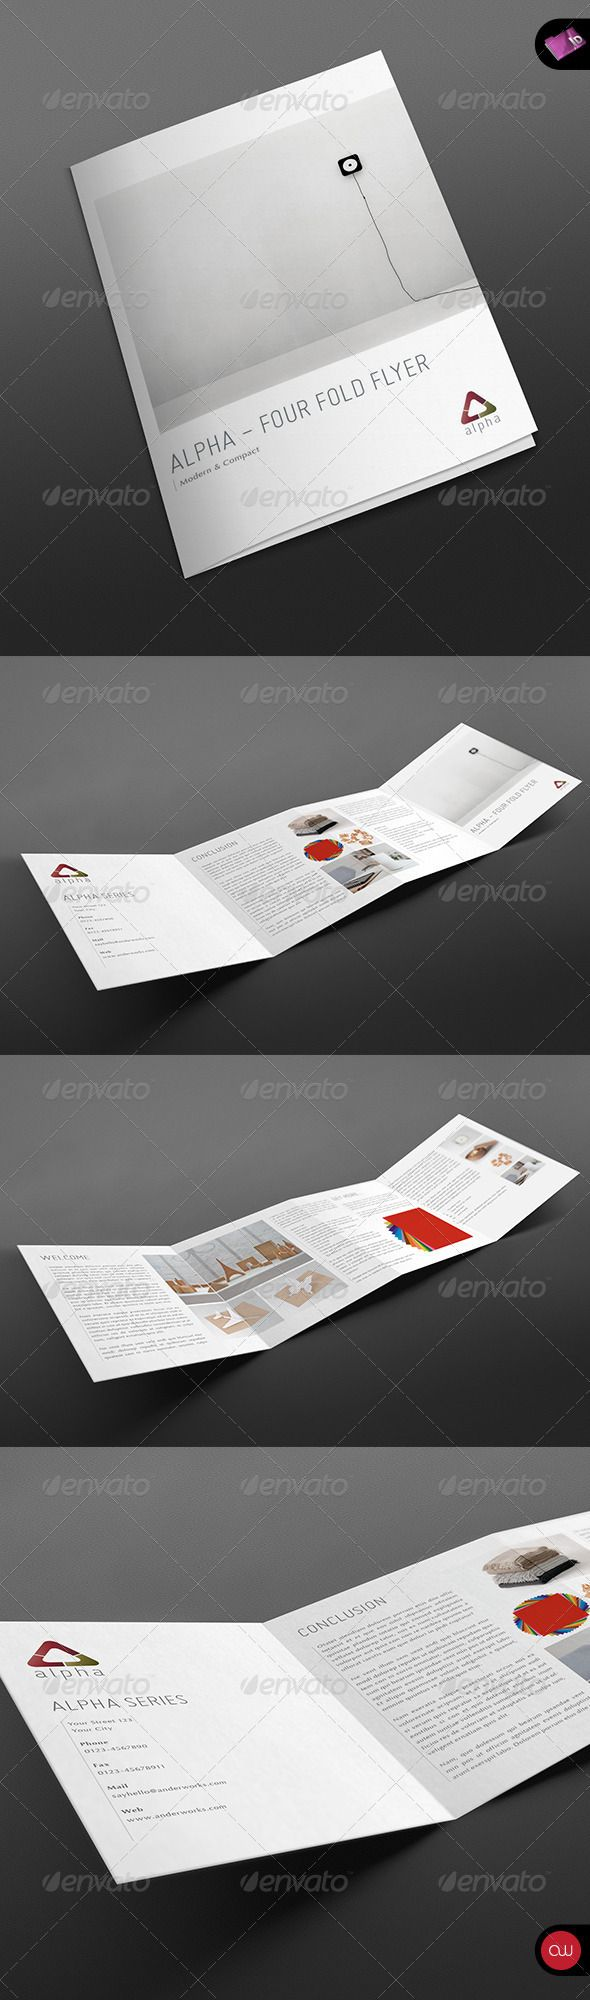 4-Fold Brochure • Alpha Series | Brochures, Brochure template and ...